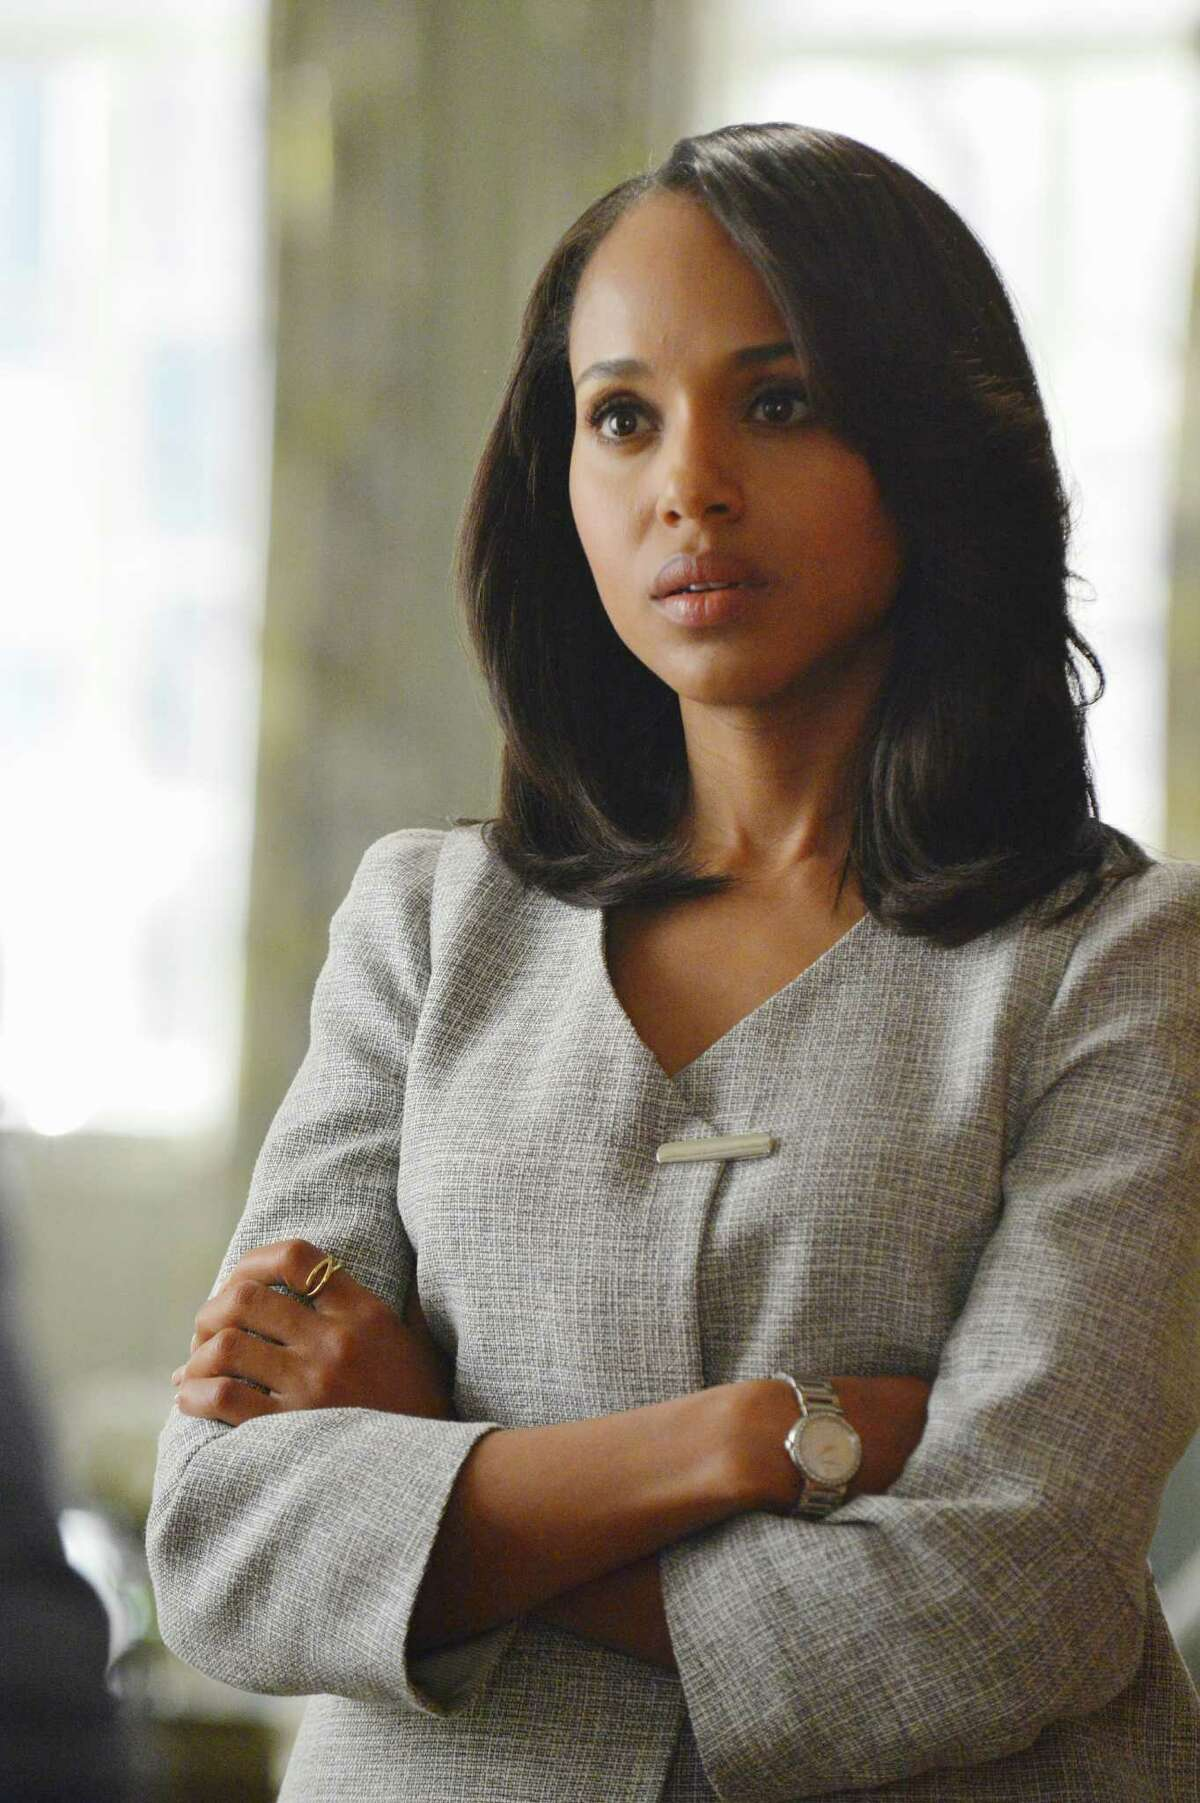 Kerry Washington plays political super-fixer Olivia Pope. Washington, who's married to football player Nnamdi Asomugha (NAHM'-dee AH'-suhm-wah), is pregnant, which may be part of the reason why ABC is shortening the current season by three episodes.